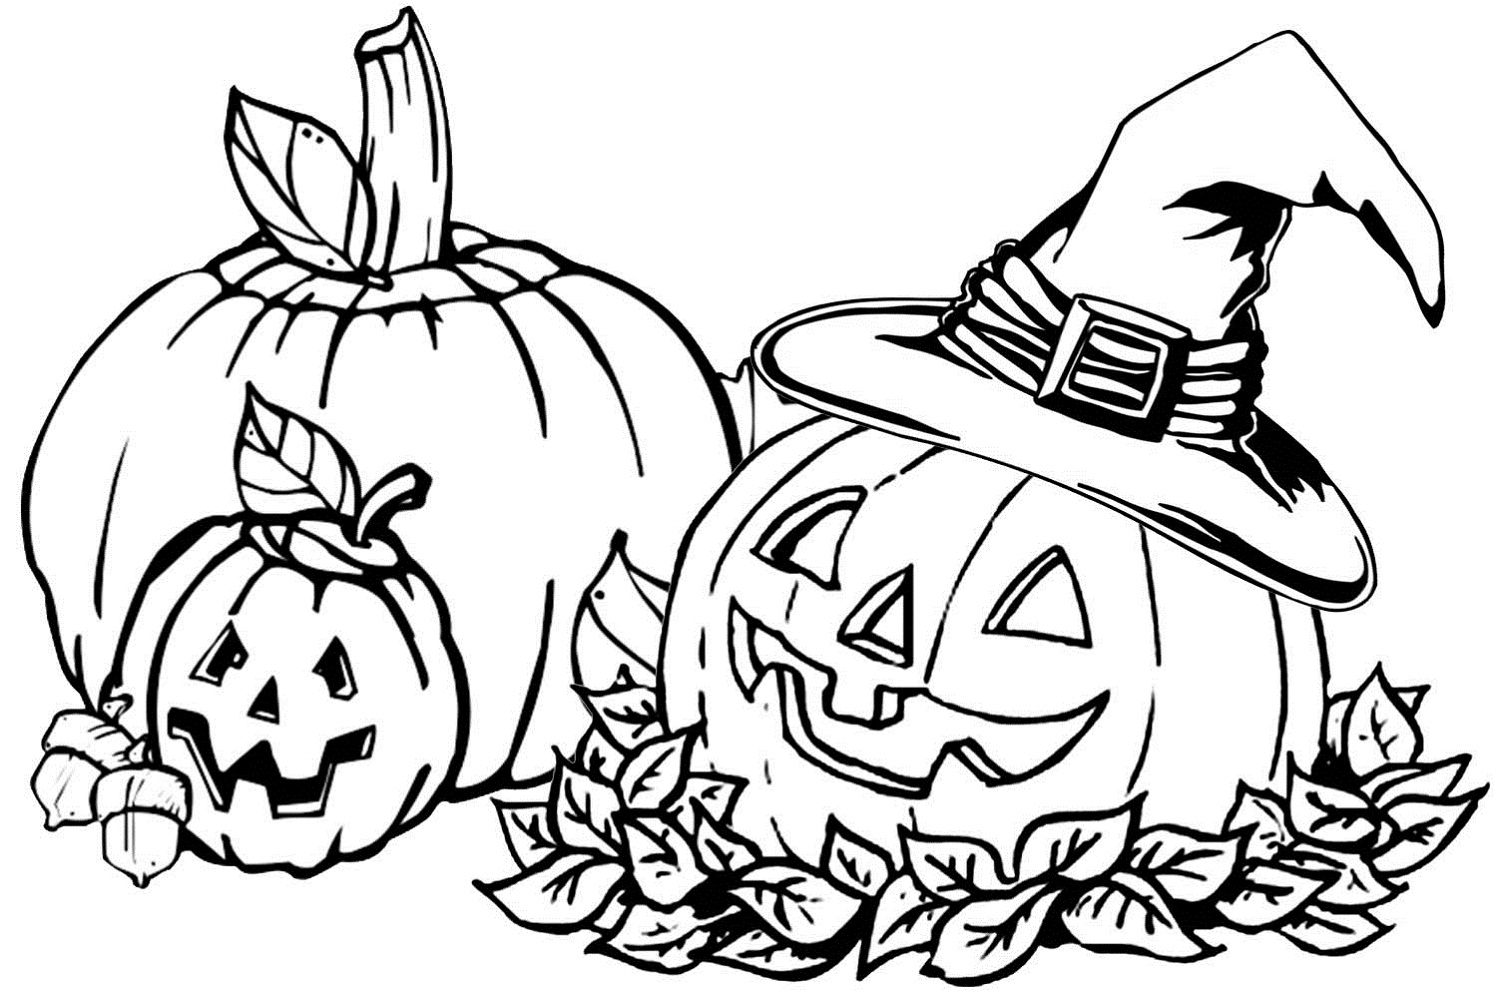 Autumn Coloring Pages Printable to Print 2f - Free For kids